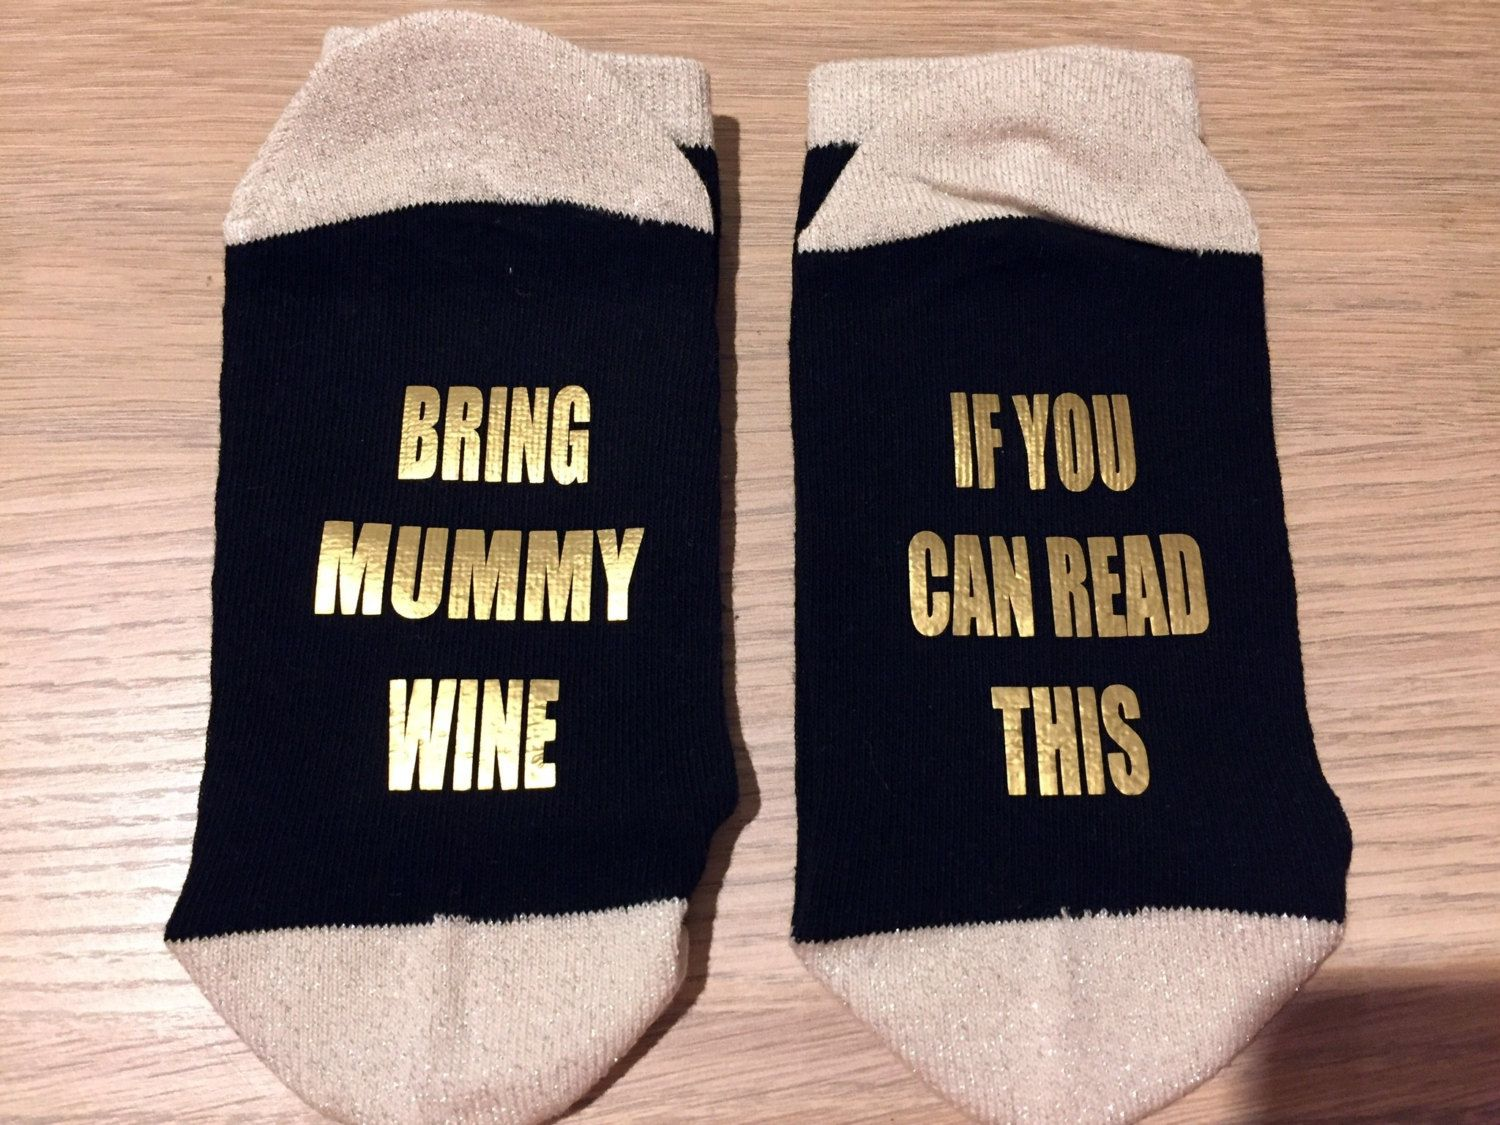 If You Can Read This Bring Mummy Wine Gold Socks Personalised